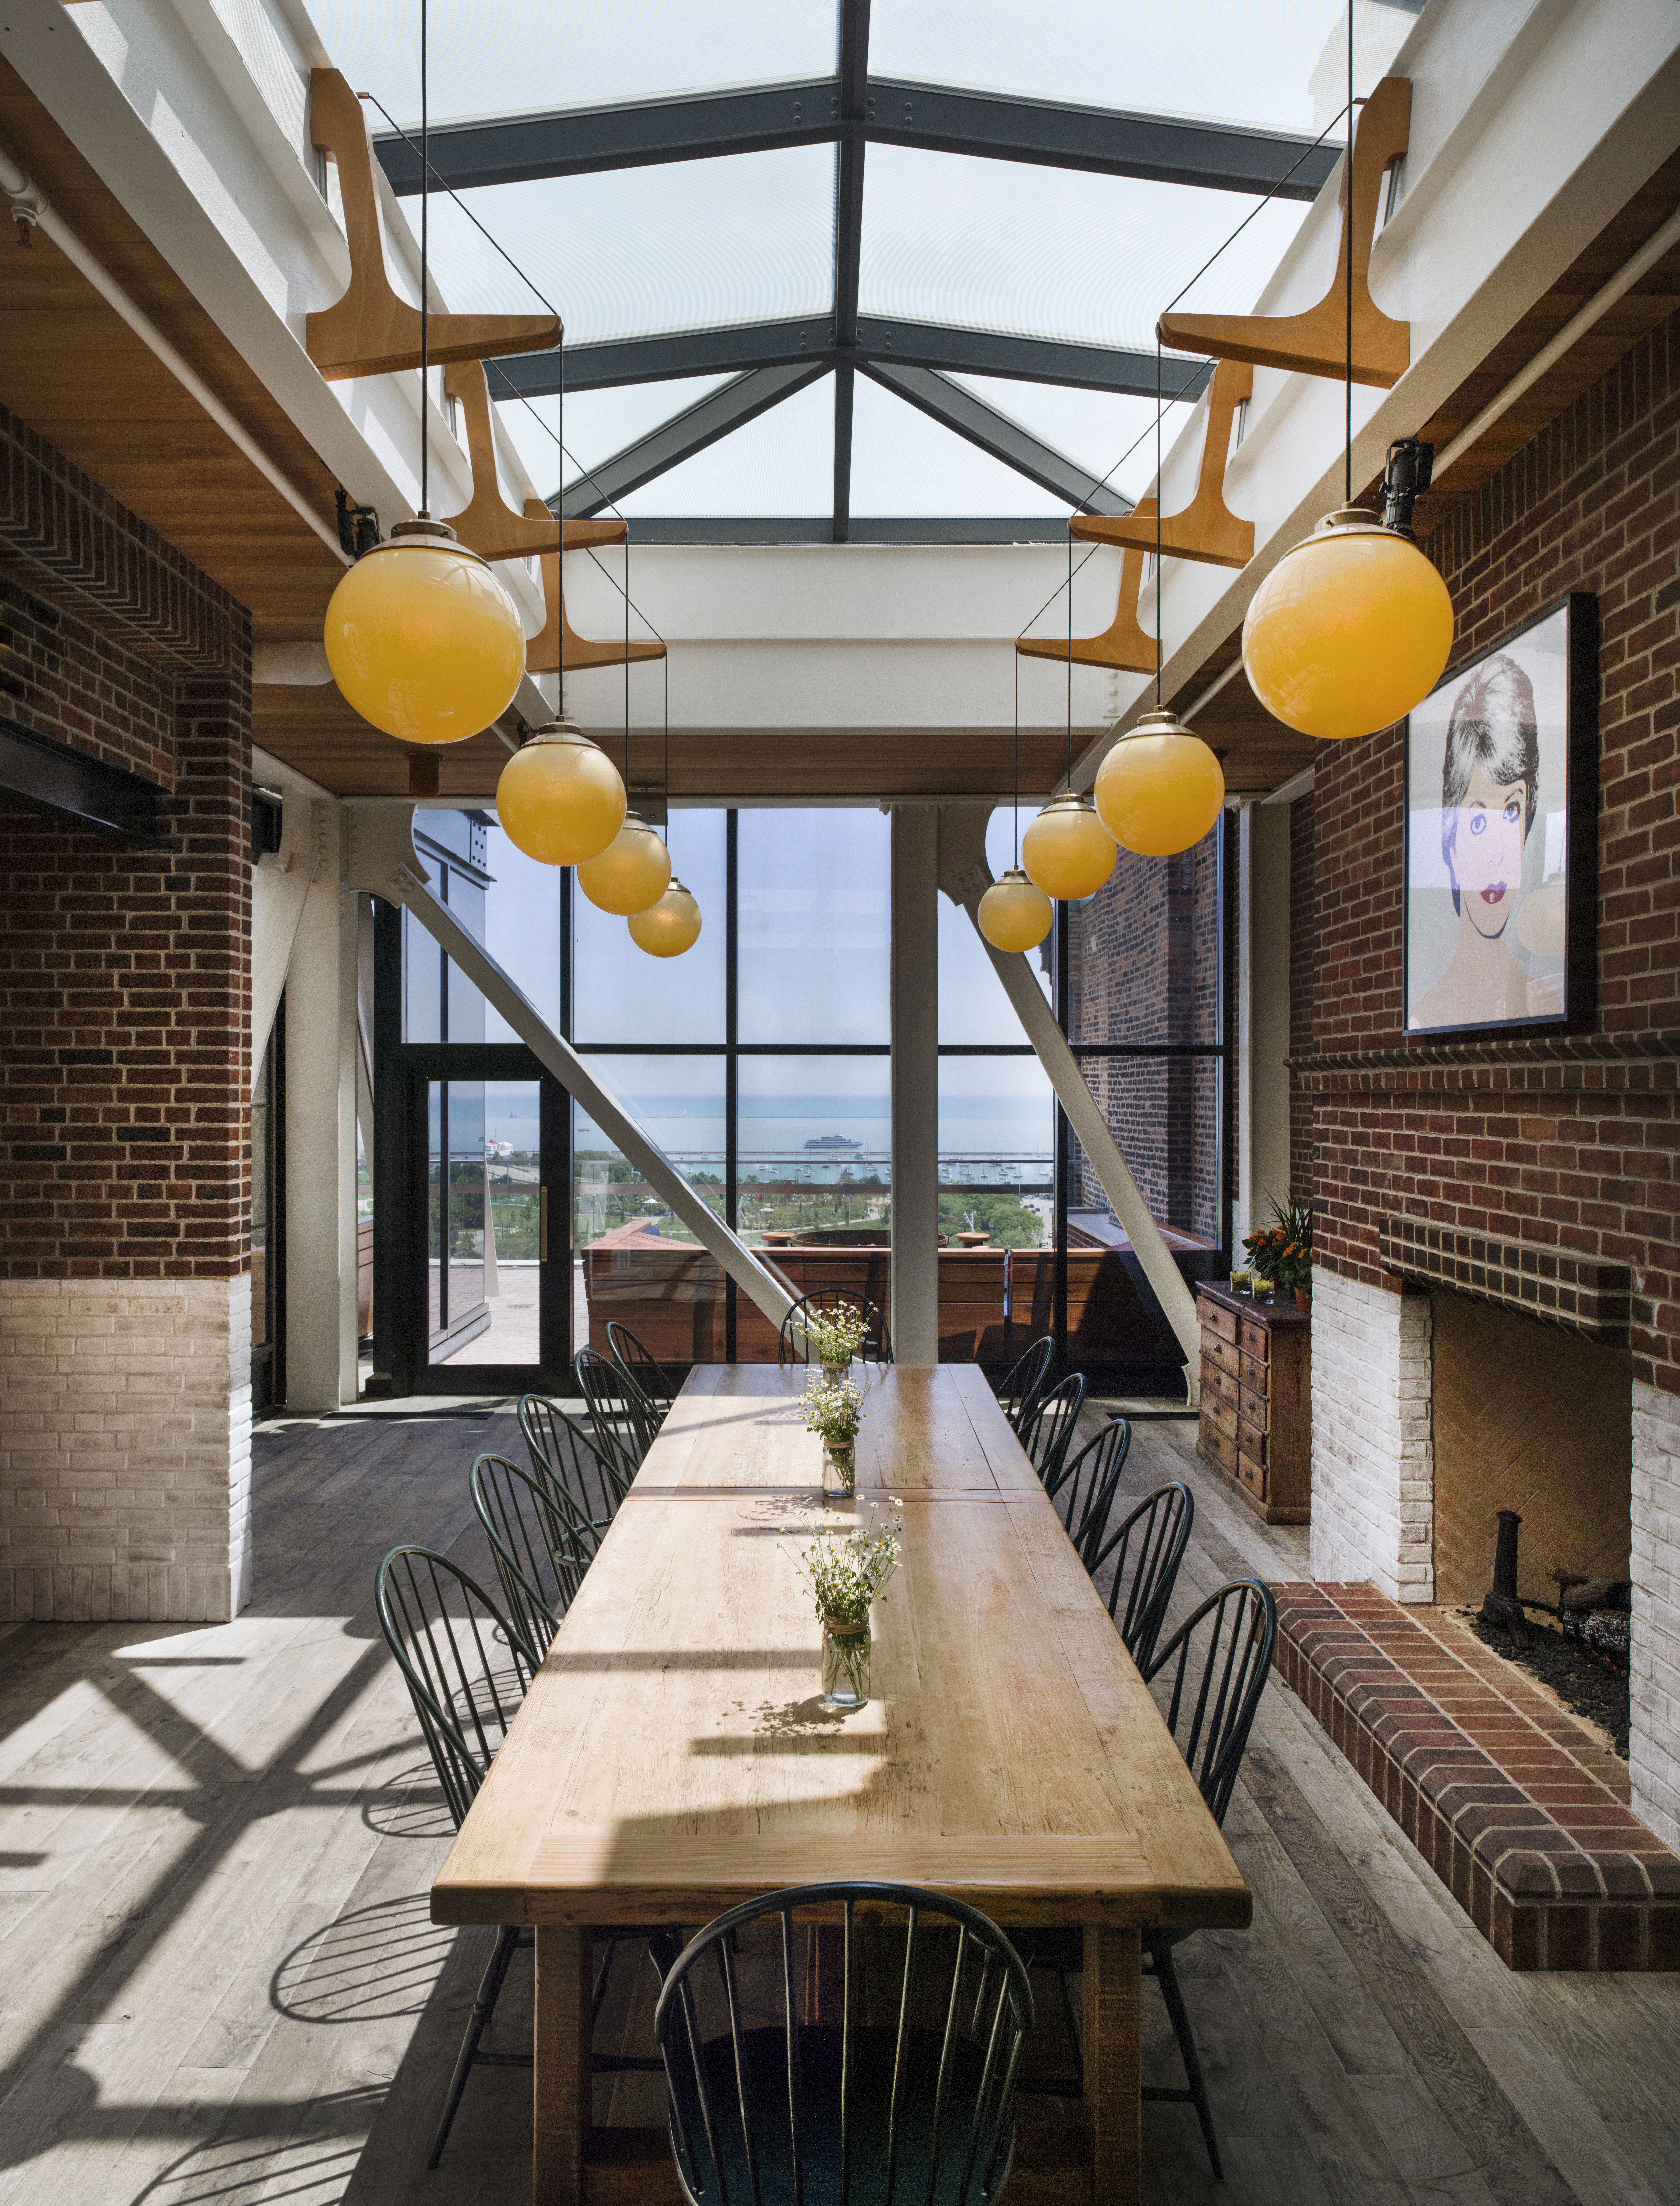 Dining Drink Eat Historic Lounge Modern Scenic views Trip Ideas building ground outdoor room Architecture interior design estate home daylighting lighting wood Lobby porch Design living room window covering loft